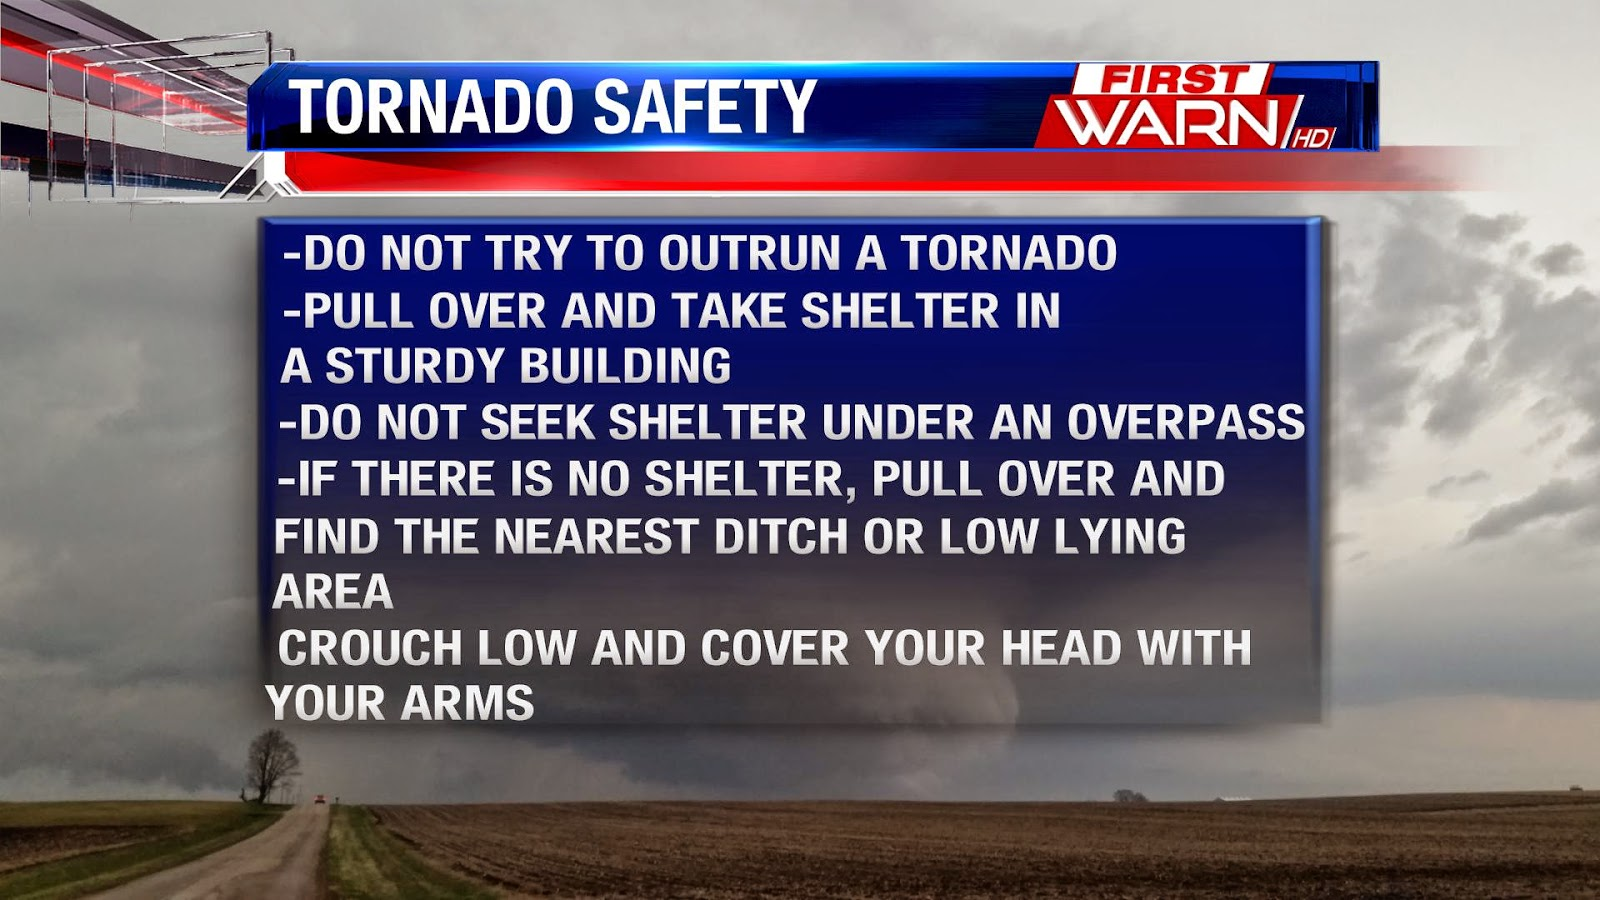 First Warn Weather Team: Tornado Safety